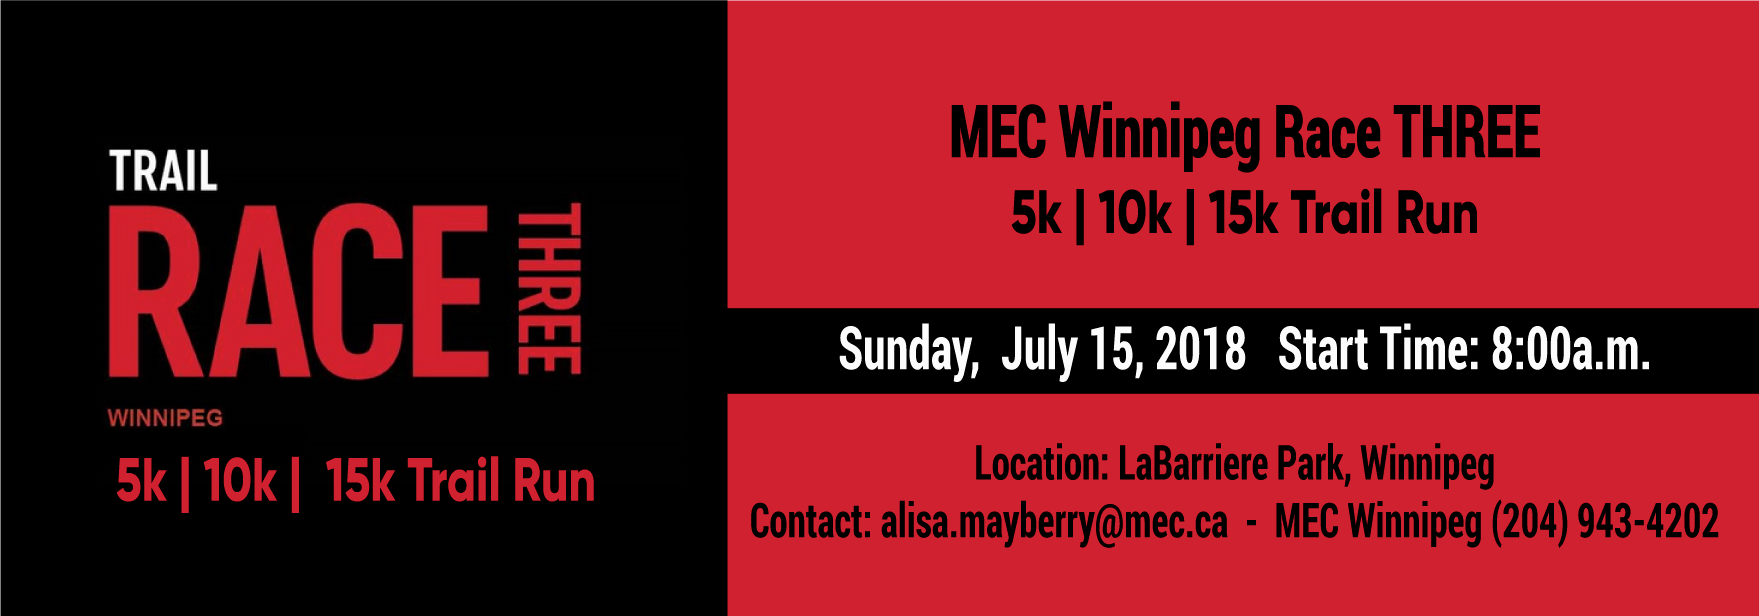 MEC Winnipeg Race Three